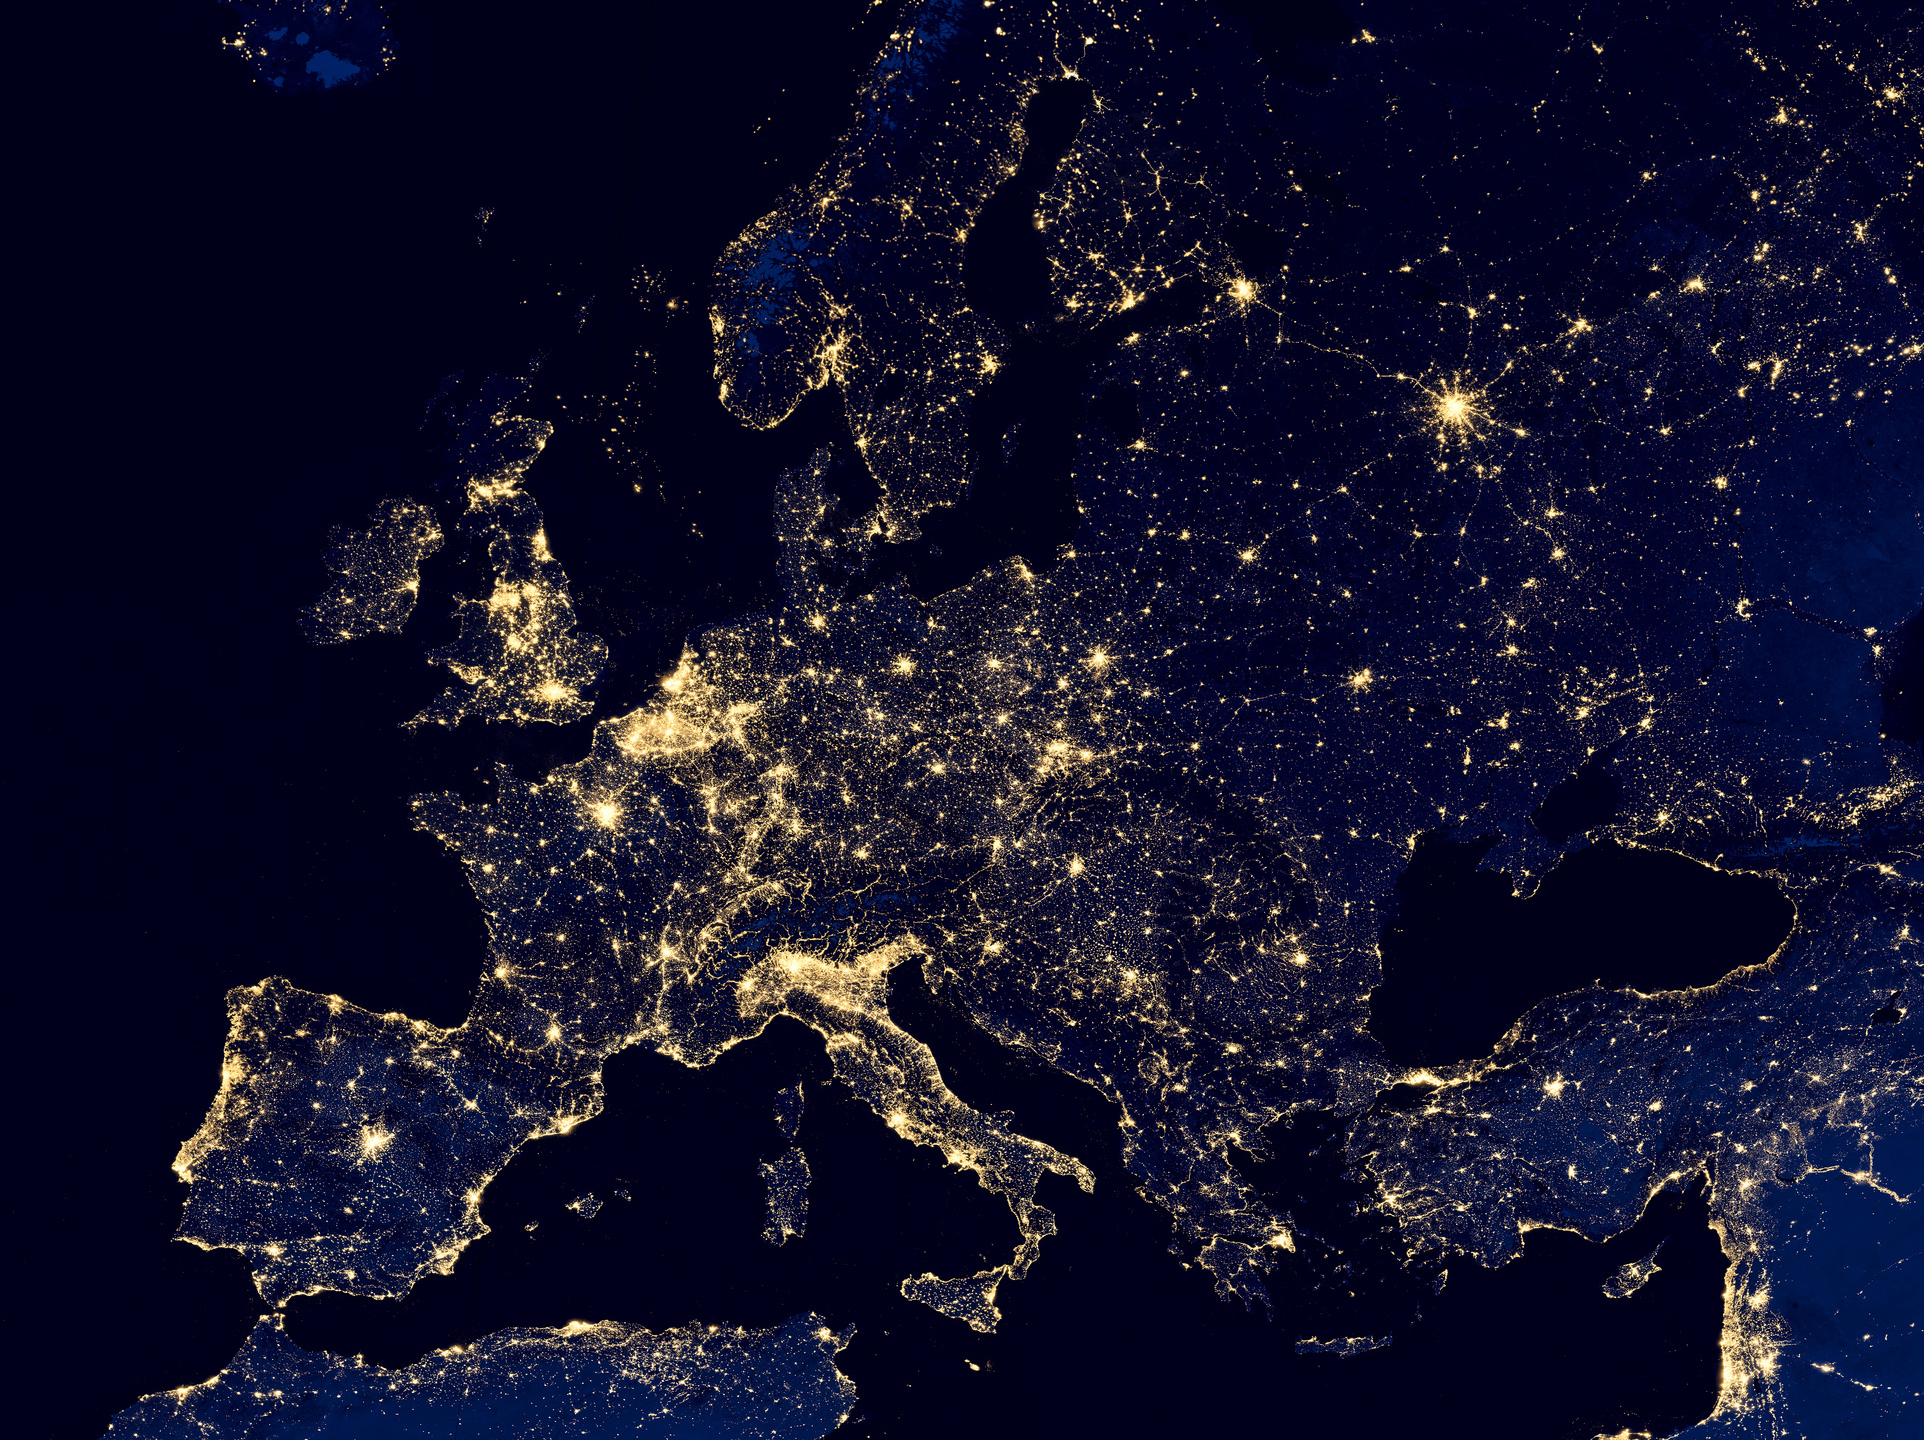 The call is dedicated to the challenges and dynamics of change within Europe. (Photo: mode_list - fotolia.com)